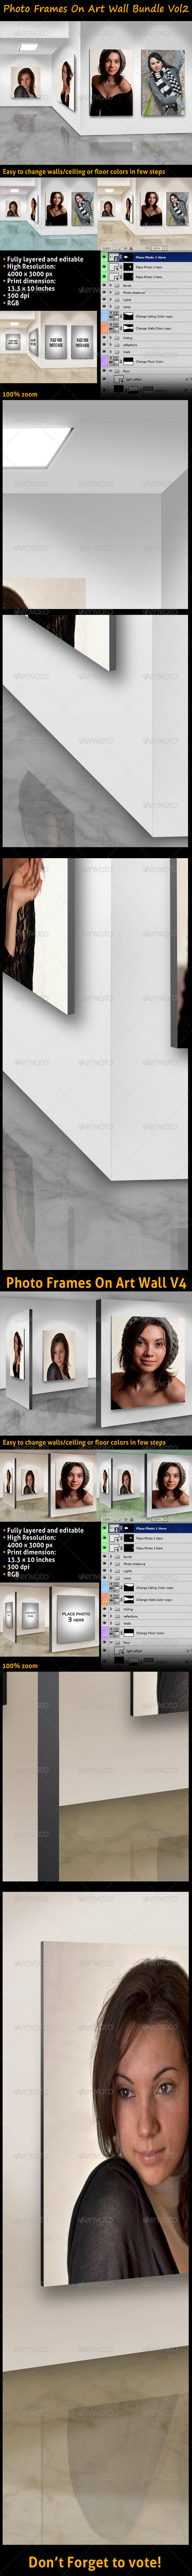 GraphicRiver Photo Frames On Art Wall Bundle Vol2 3484300